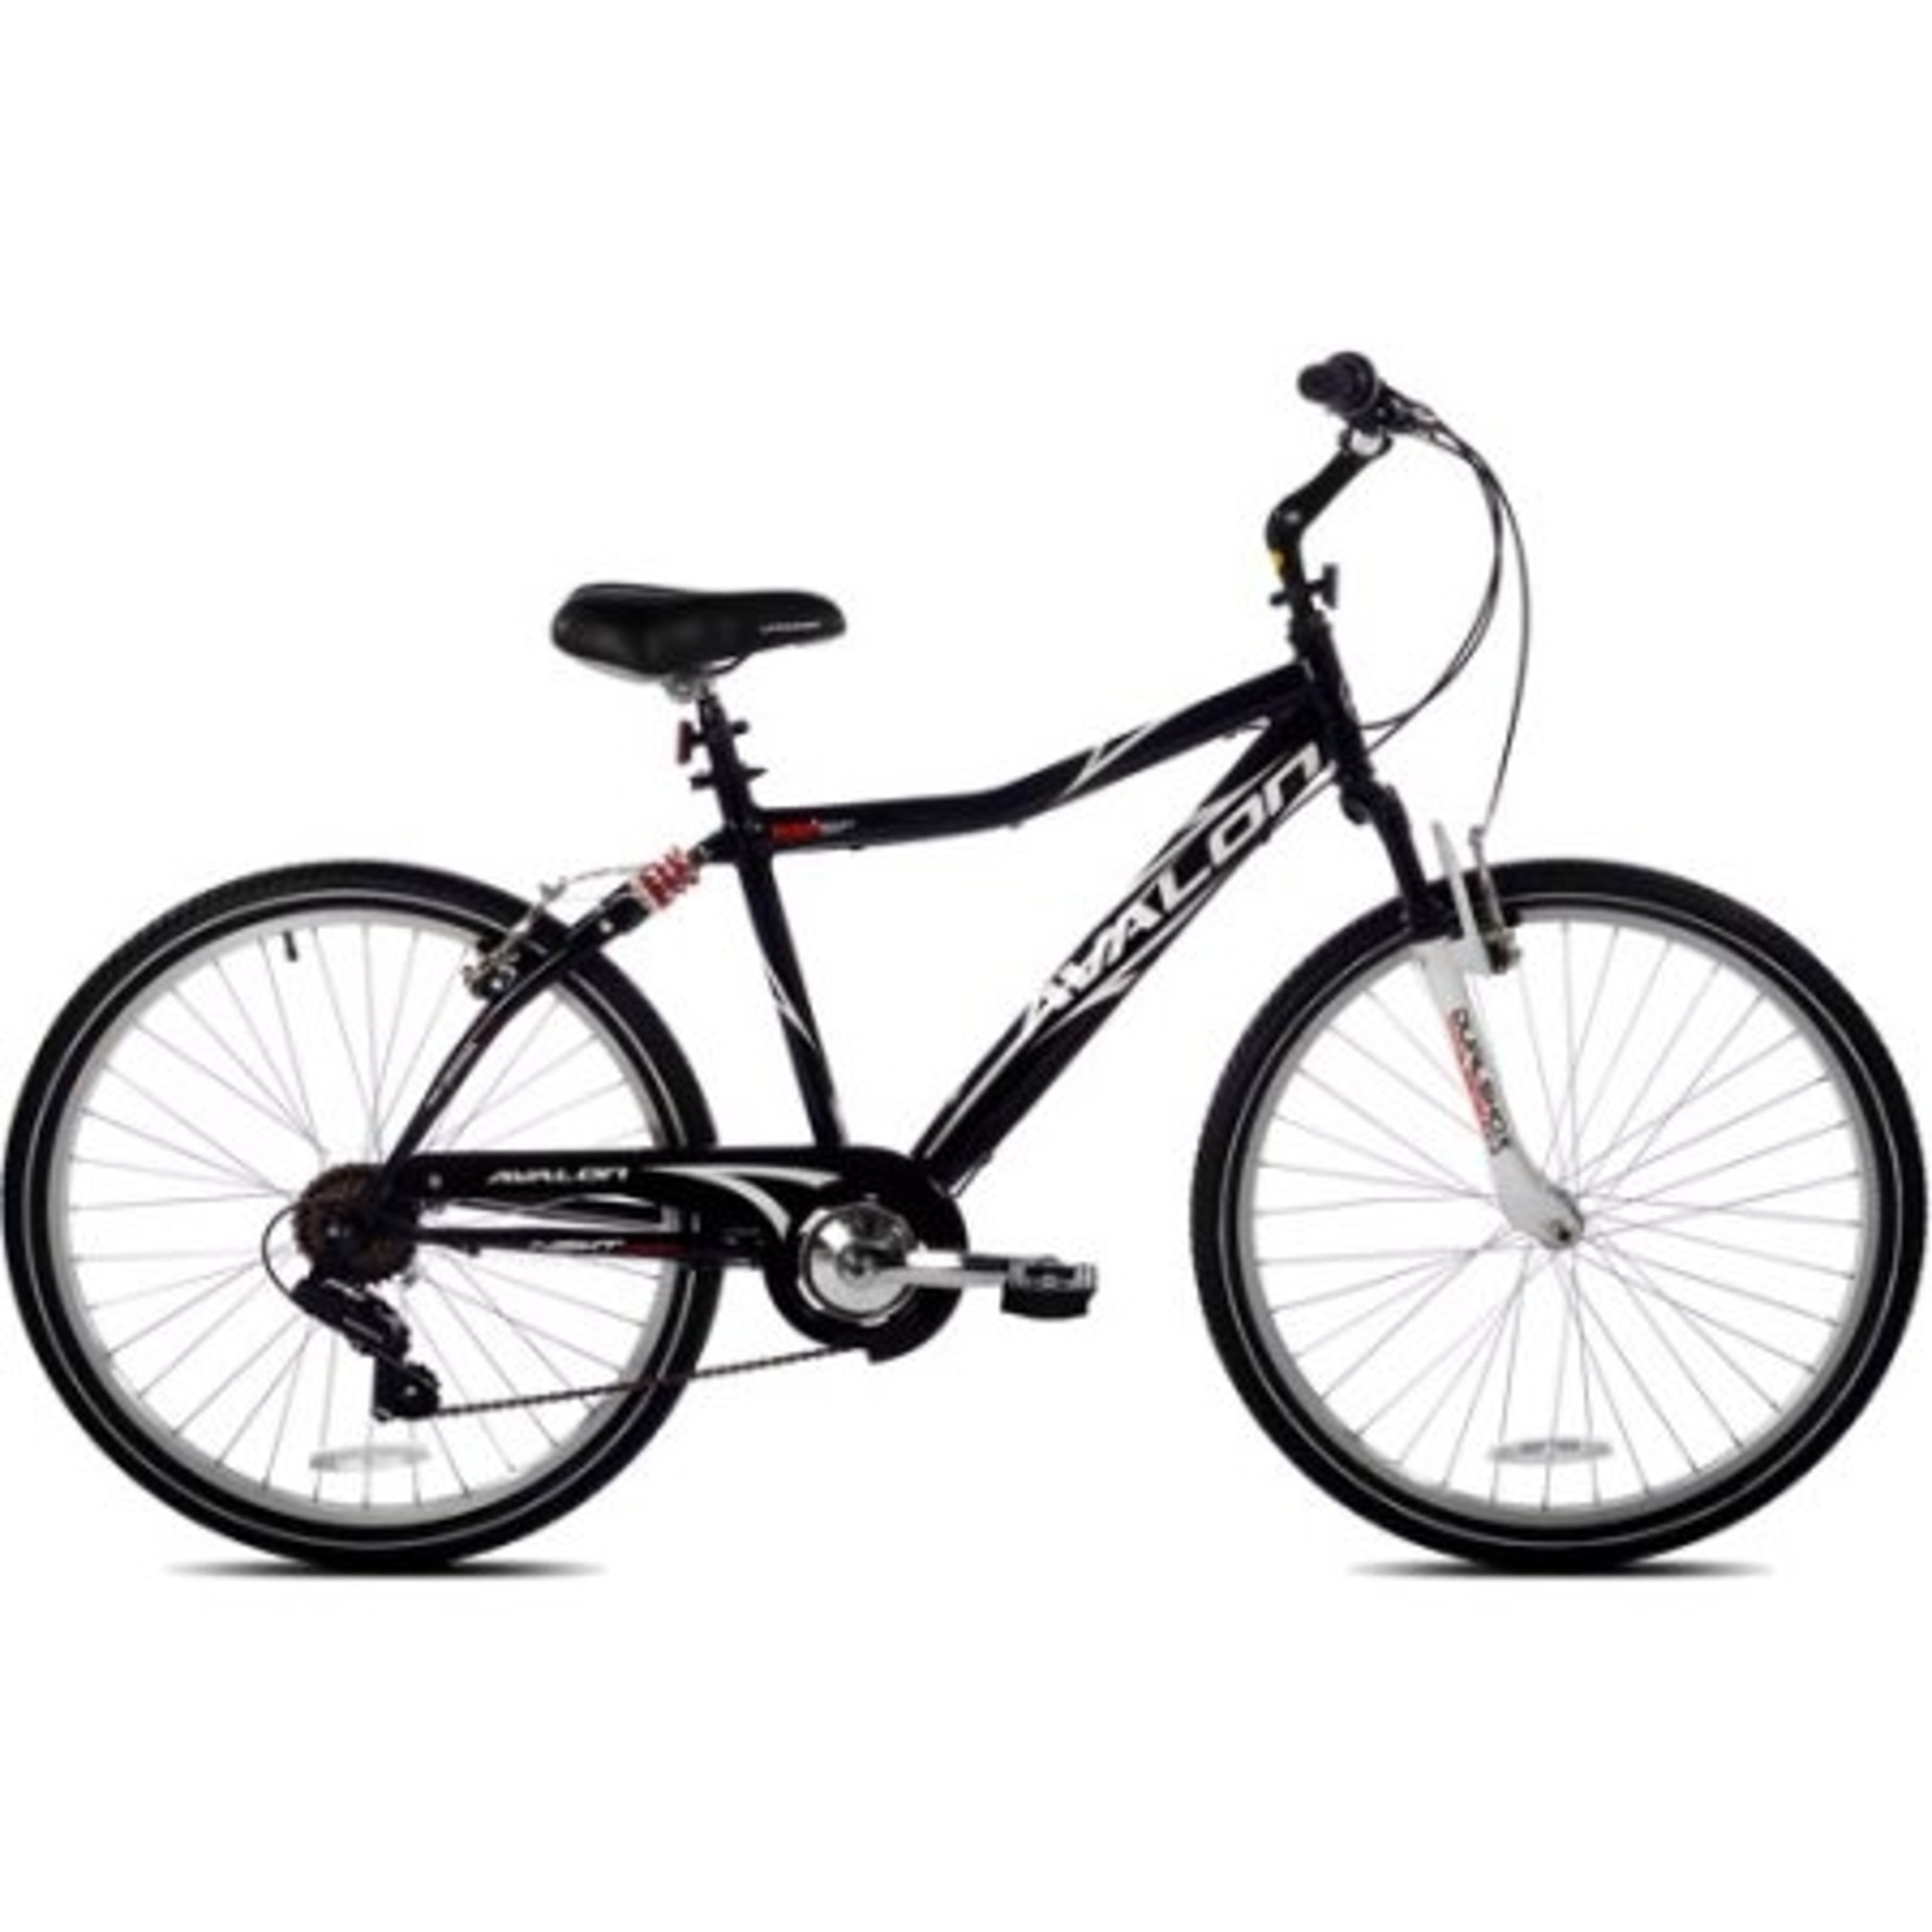 Bike with Full Suspension 26'' NEXT Avalon Men's Comfort Bicycle, Black